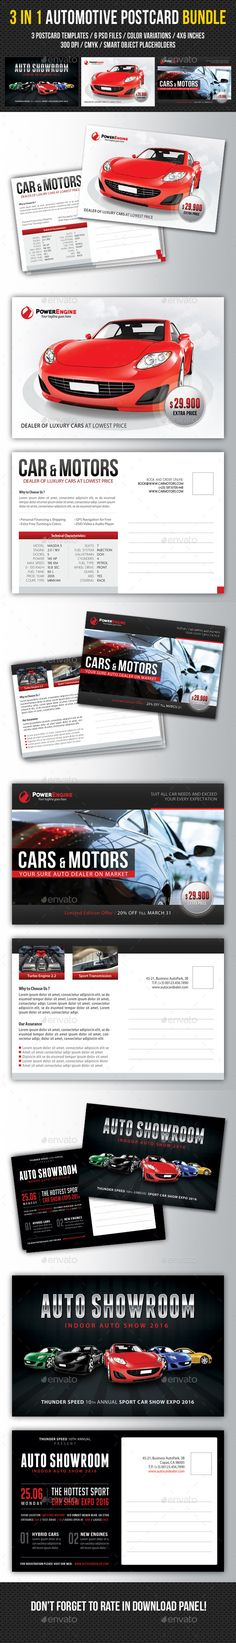 Pin by Bernhard Schipper on AutoMotive Pinterest - car for sale template word